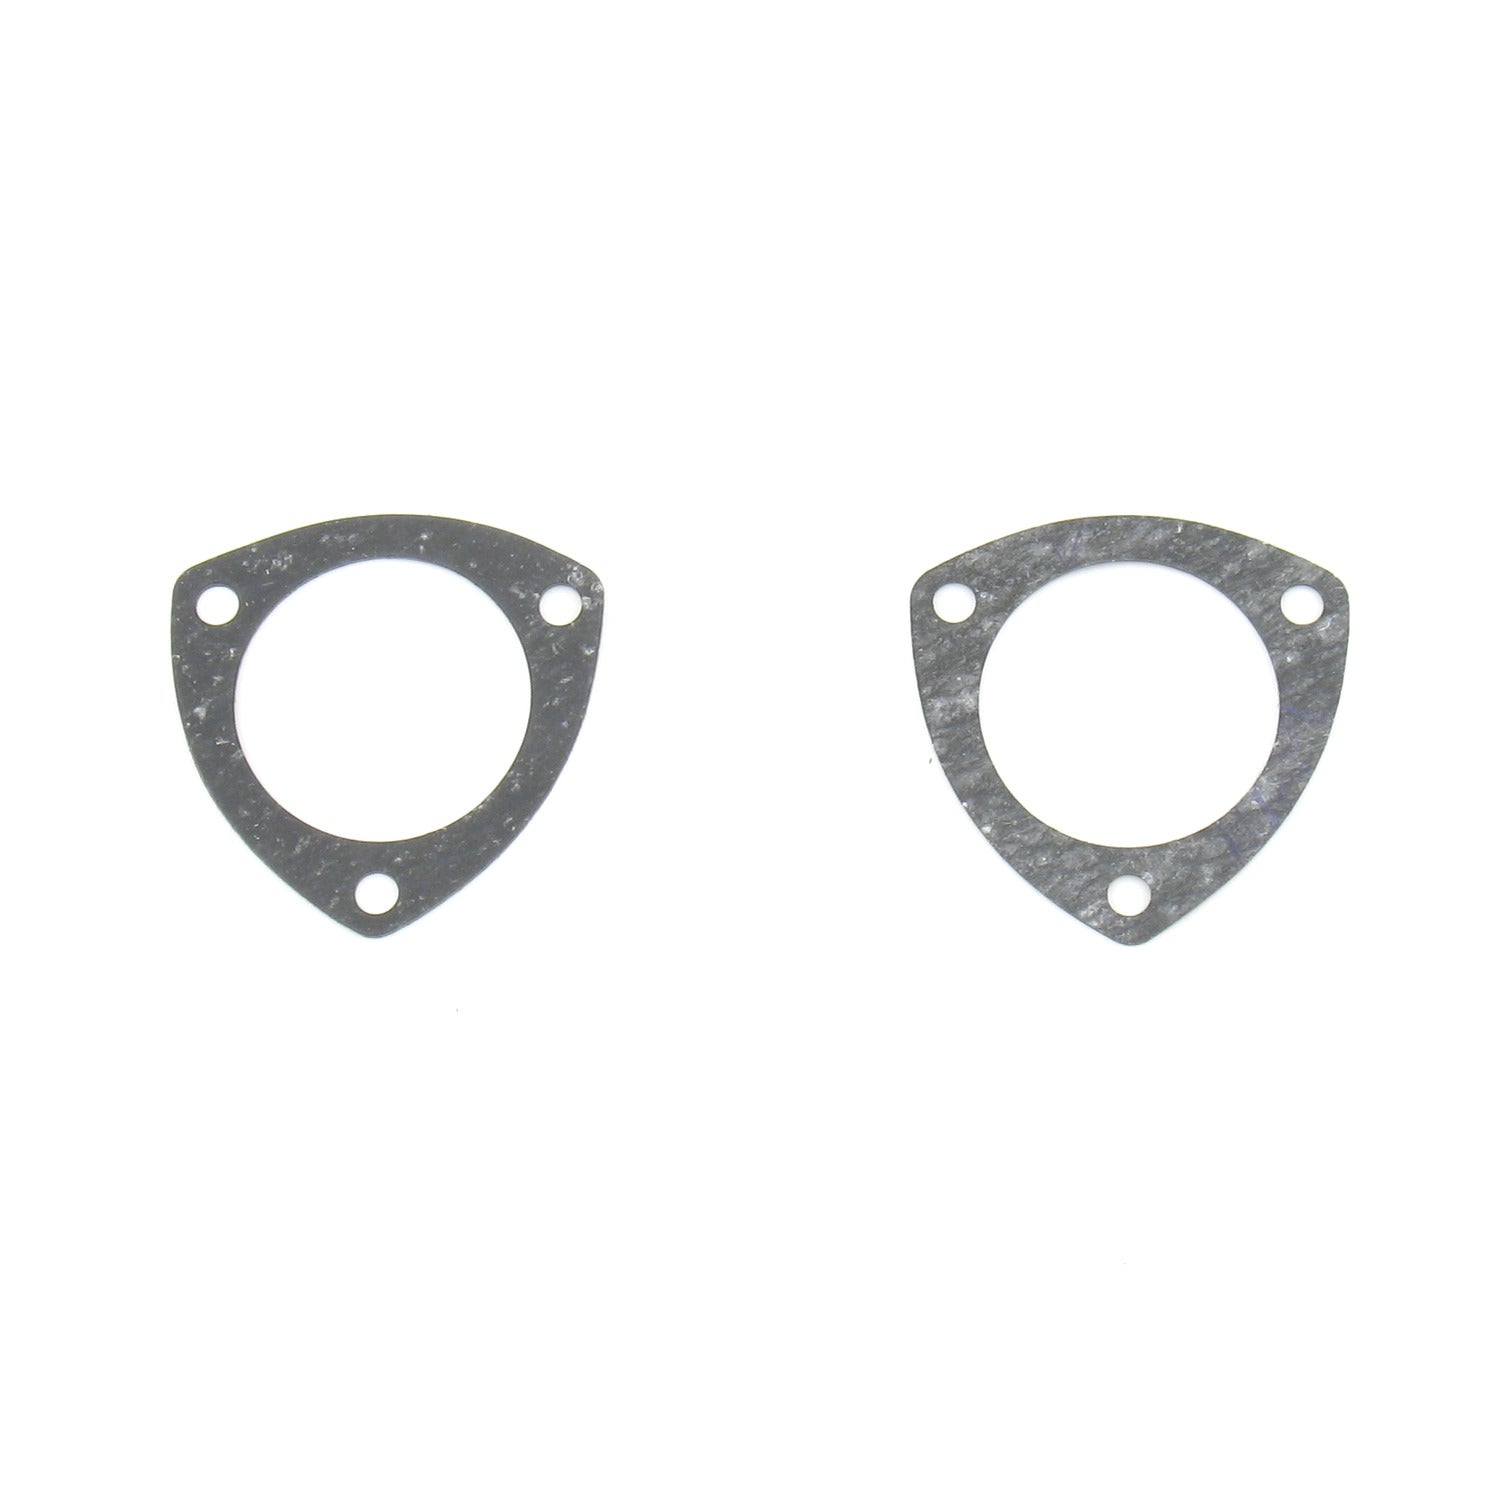 "Doug's Headers CG9005 3 bolt 2 1/2"" Collector Gaskets"